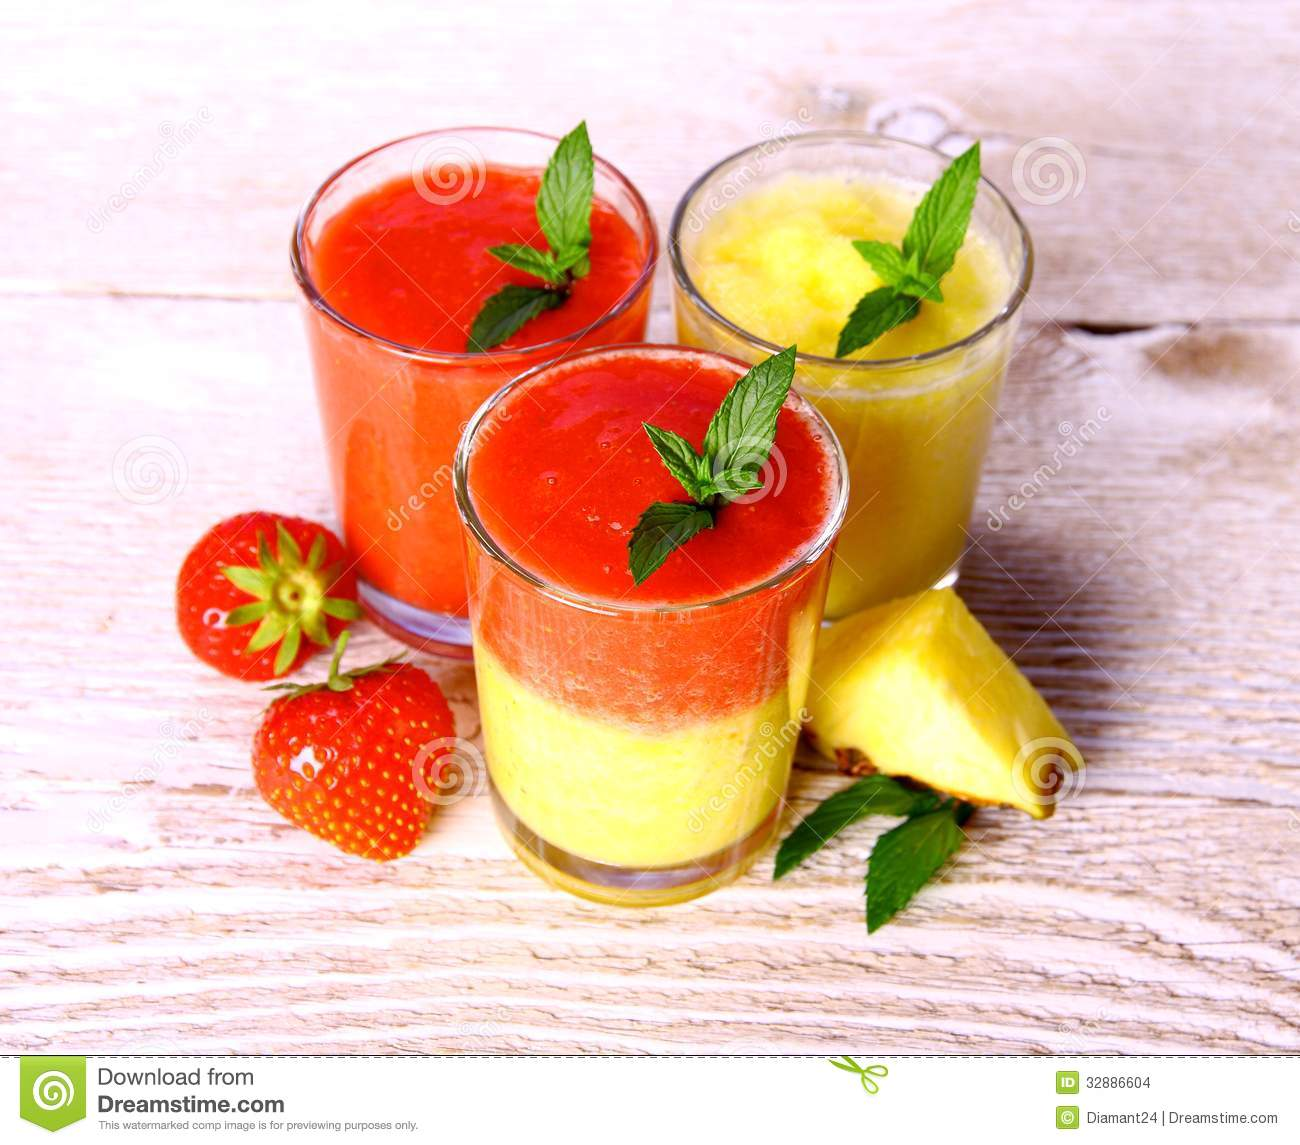 ... Images: Strawberry and pineapple smoothie in glass with fruits, mint